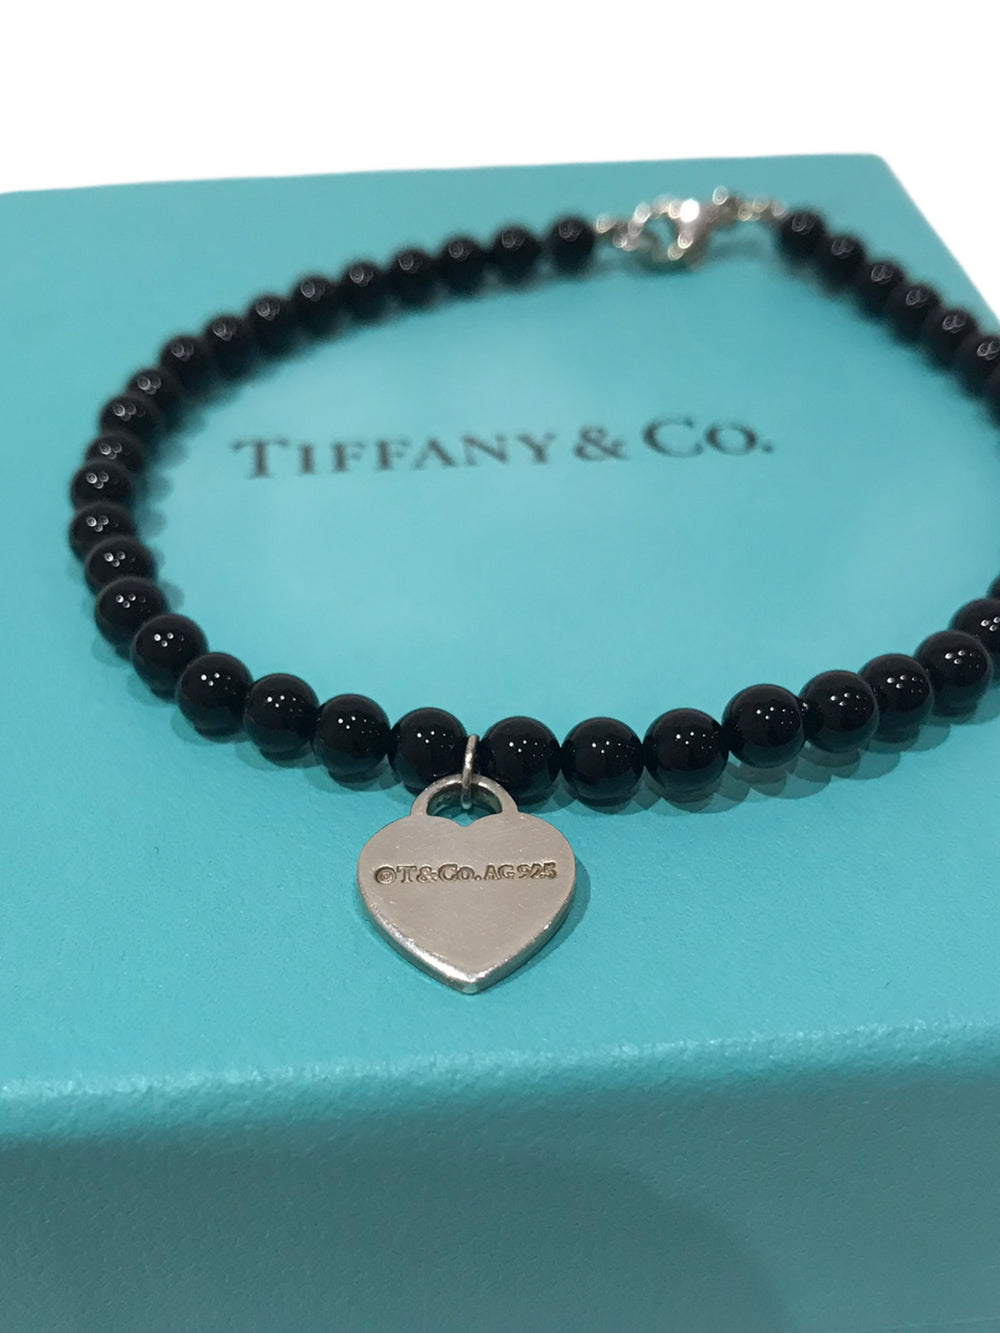 Tiffany & Co. Black Bead Bracelet - As Seen on Instagram